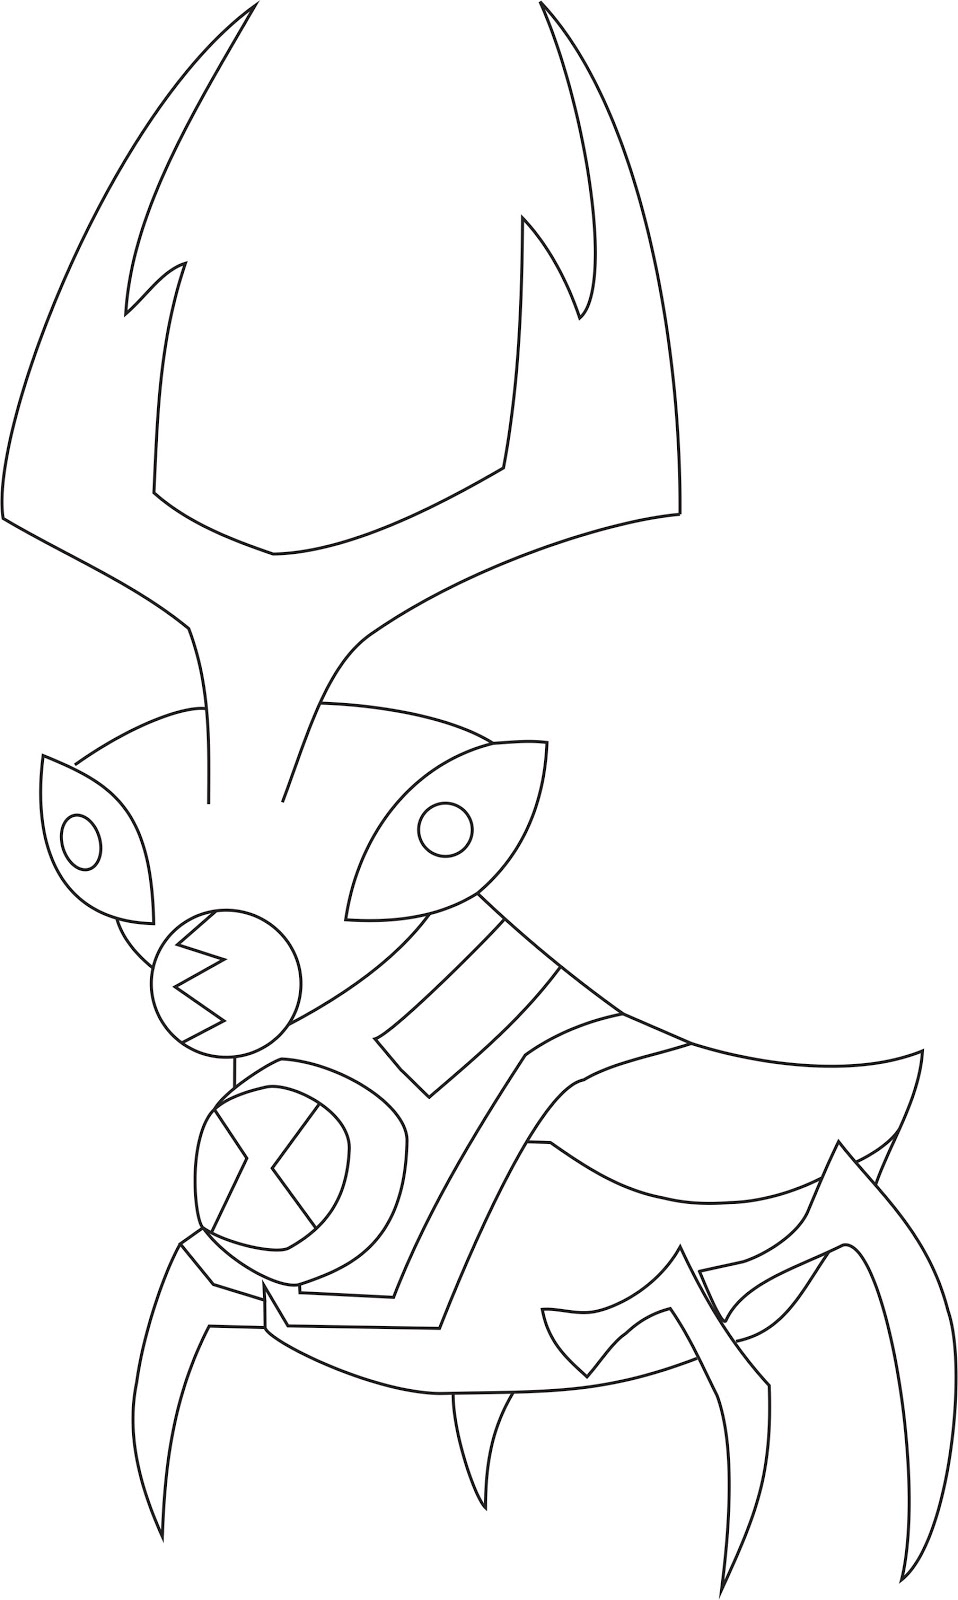 Ben 10 omniverse bloxx s free coloring pages for Ben ten omniverse coloring pages